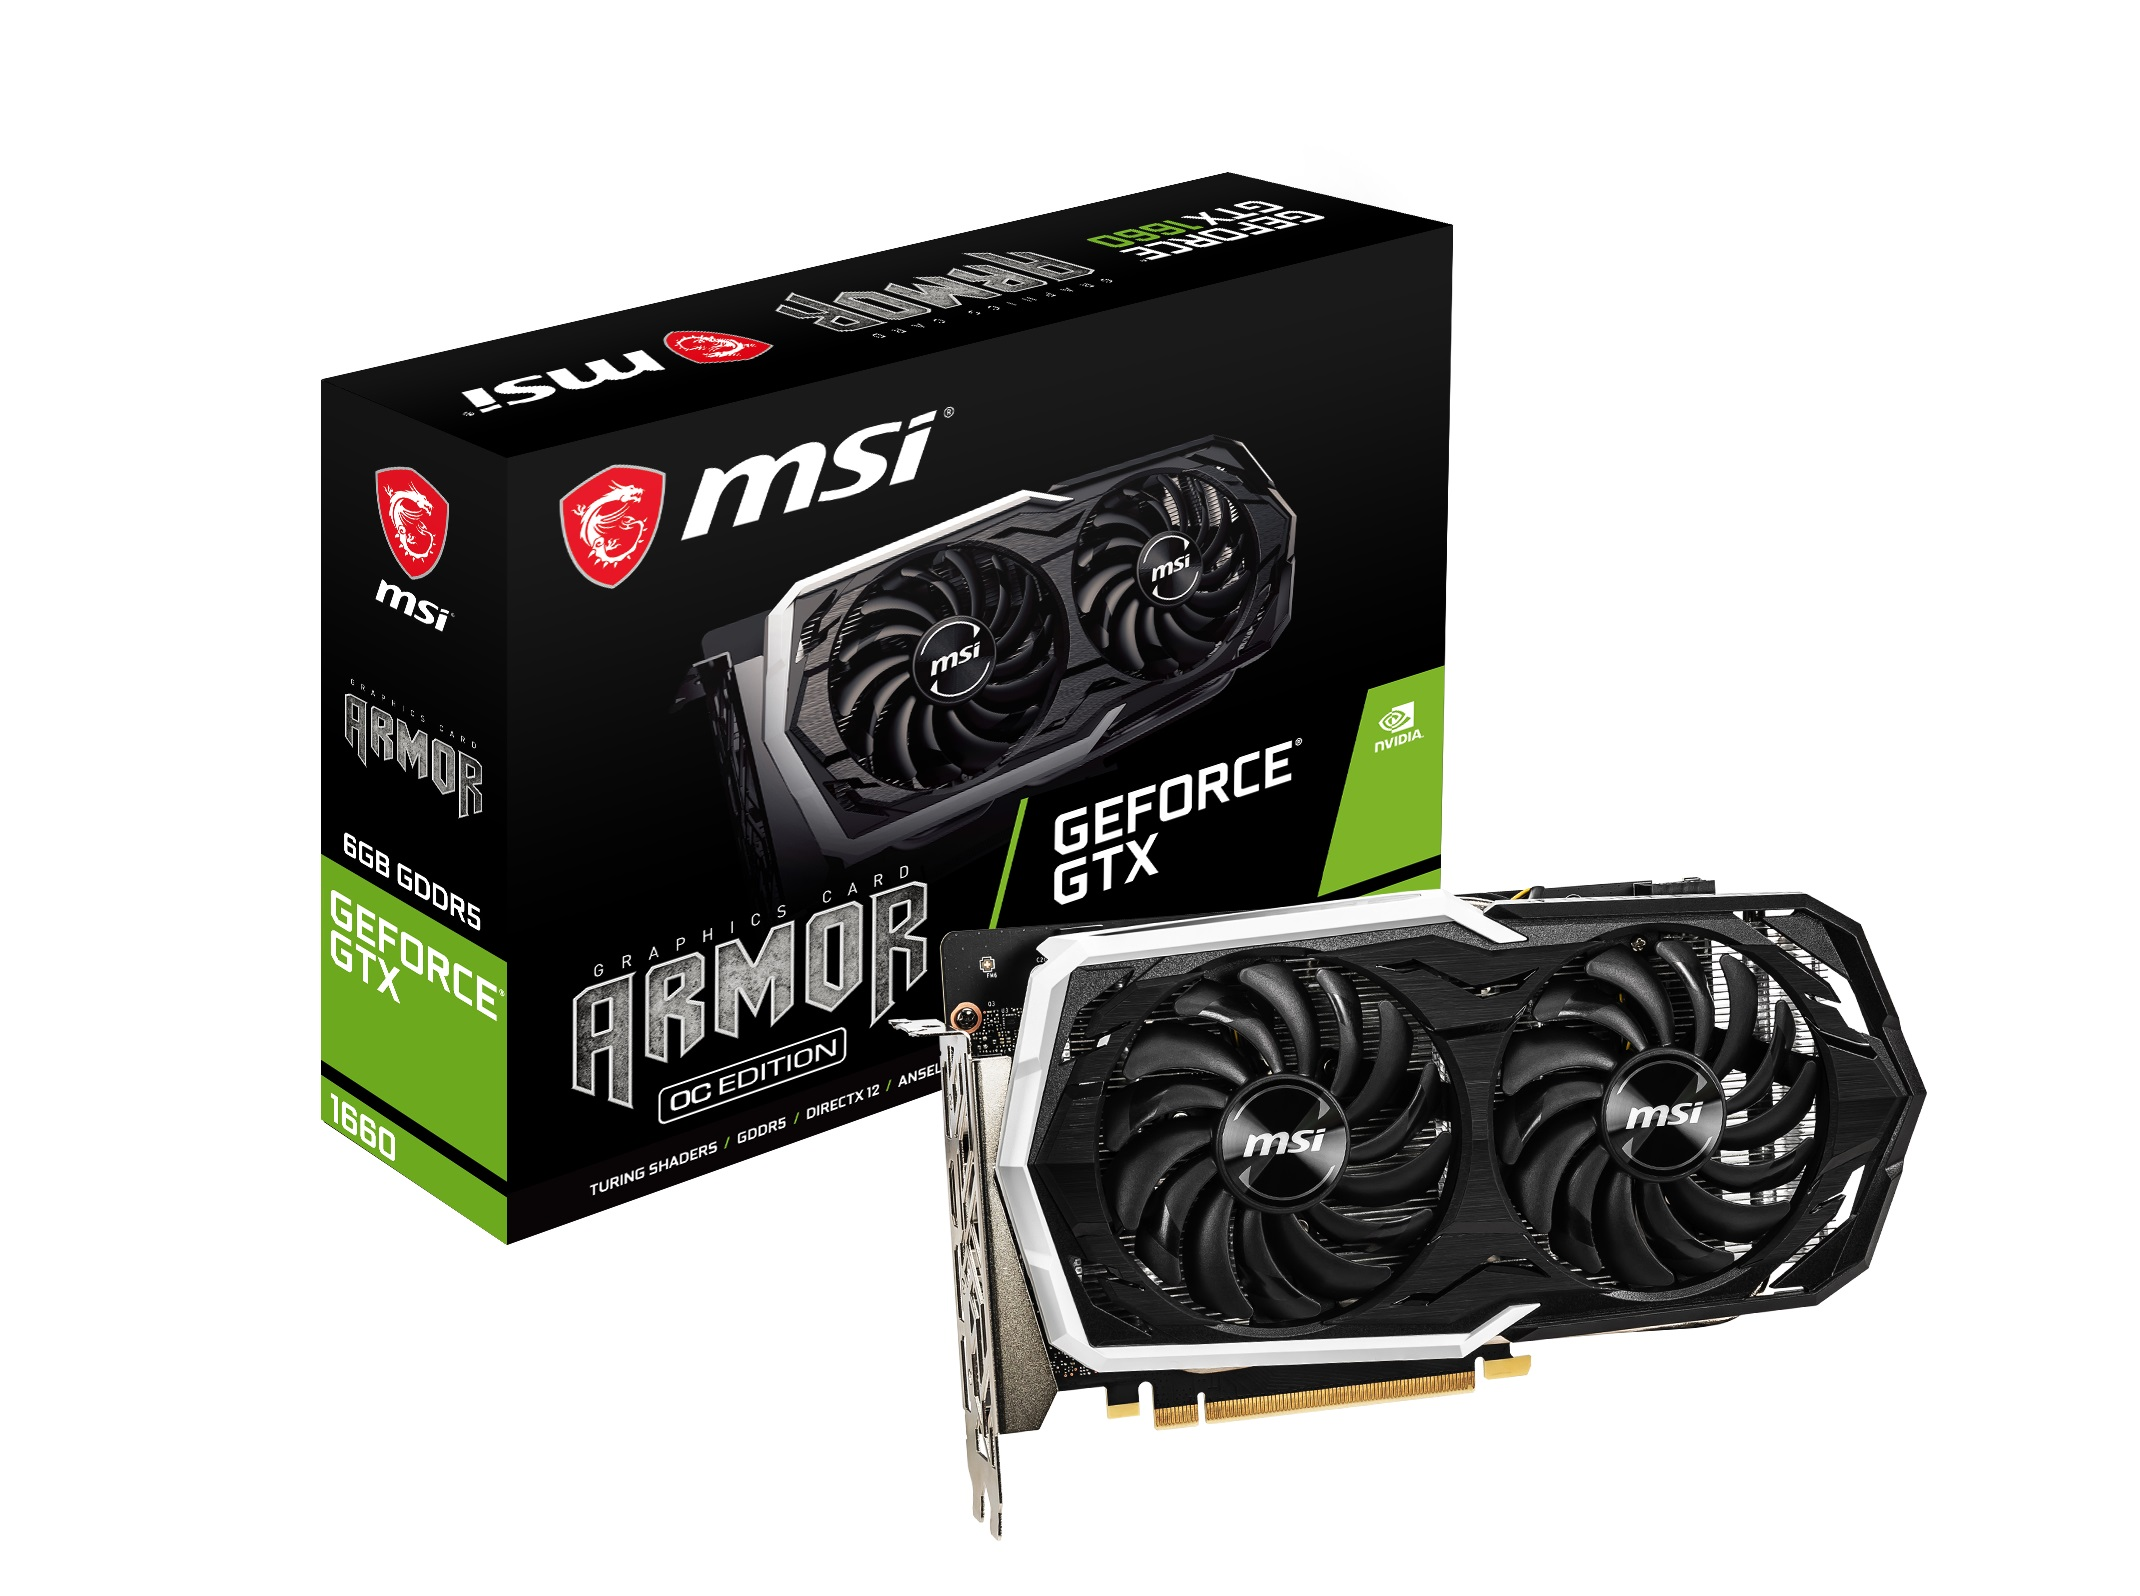 MSI GTX 1660 GAMING X 6G 6GB GDDR5